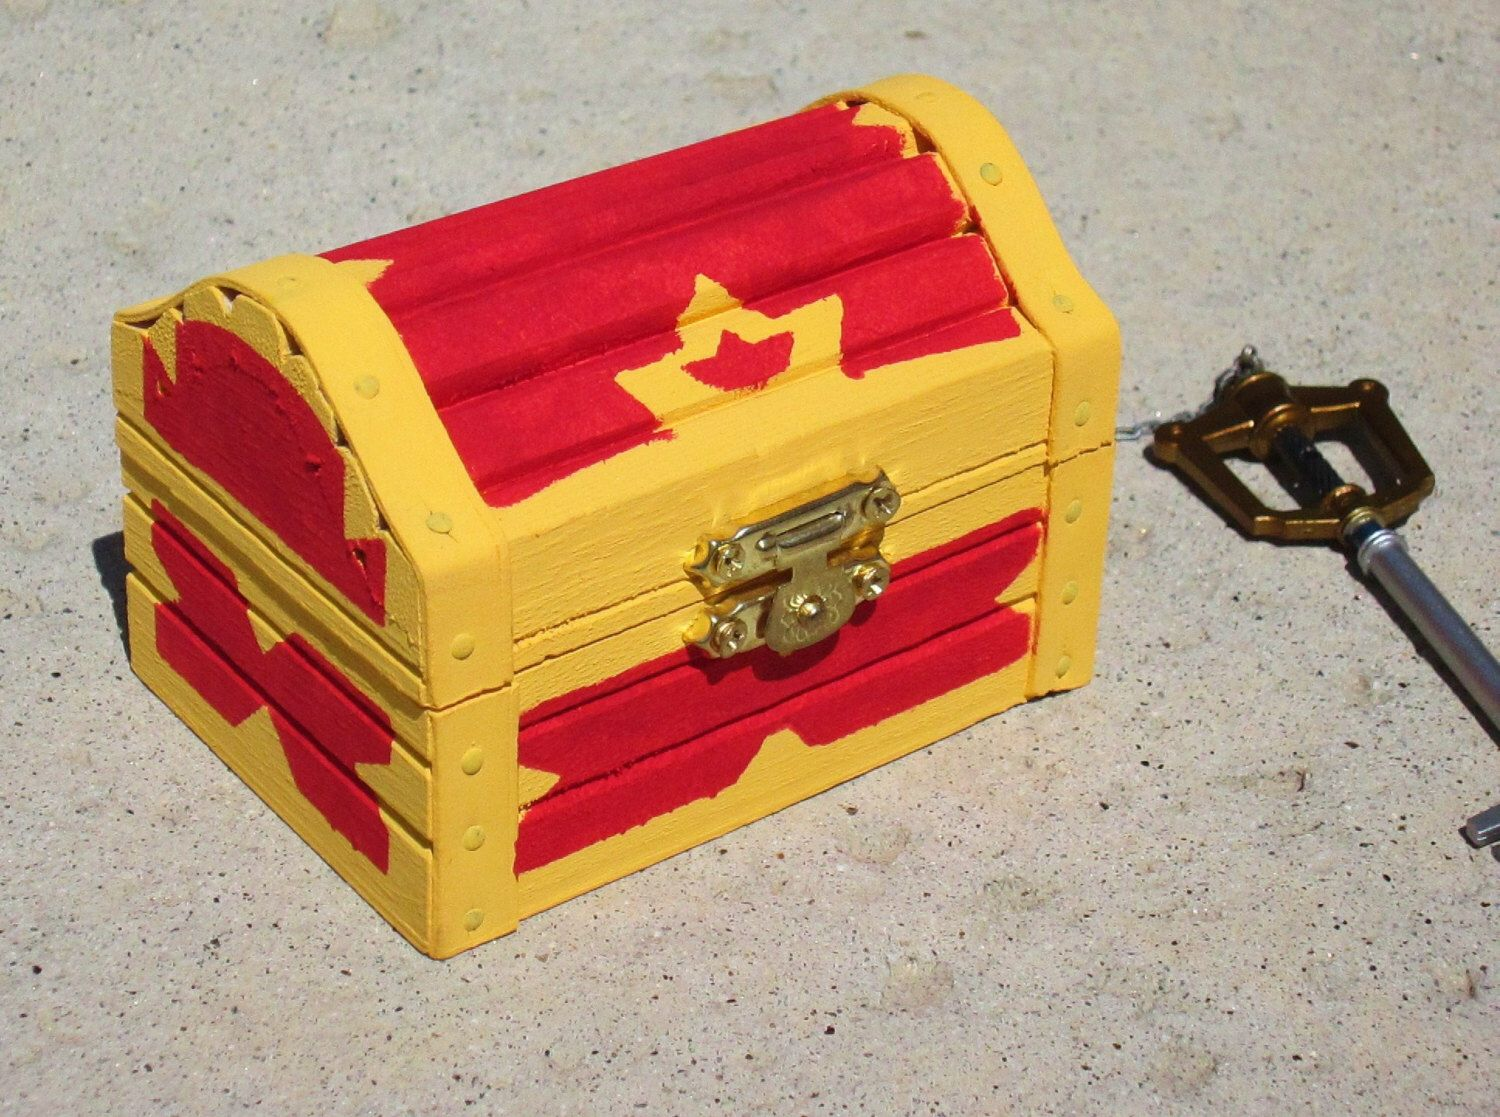 Kingdom Hearts Inspired Treasure Chest Trinket Box By Kaztielkrafts On Etsy Https Kingdom Hearts Woodworking Workshop Plans Chest Woodworking Plans